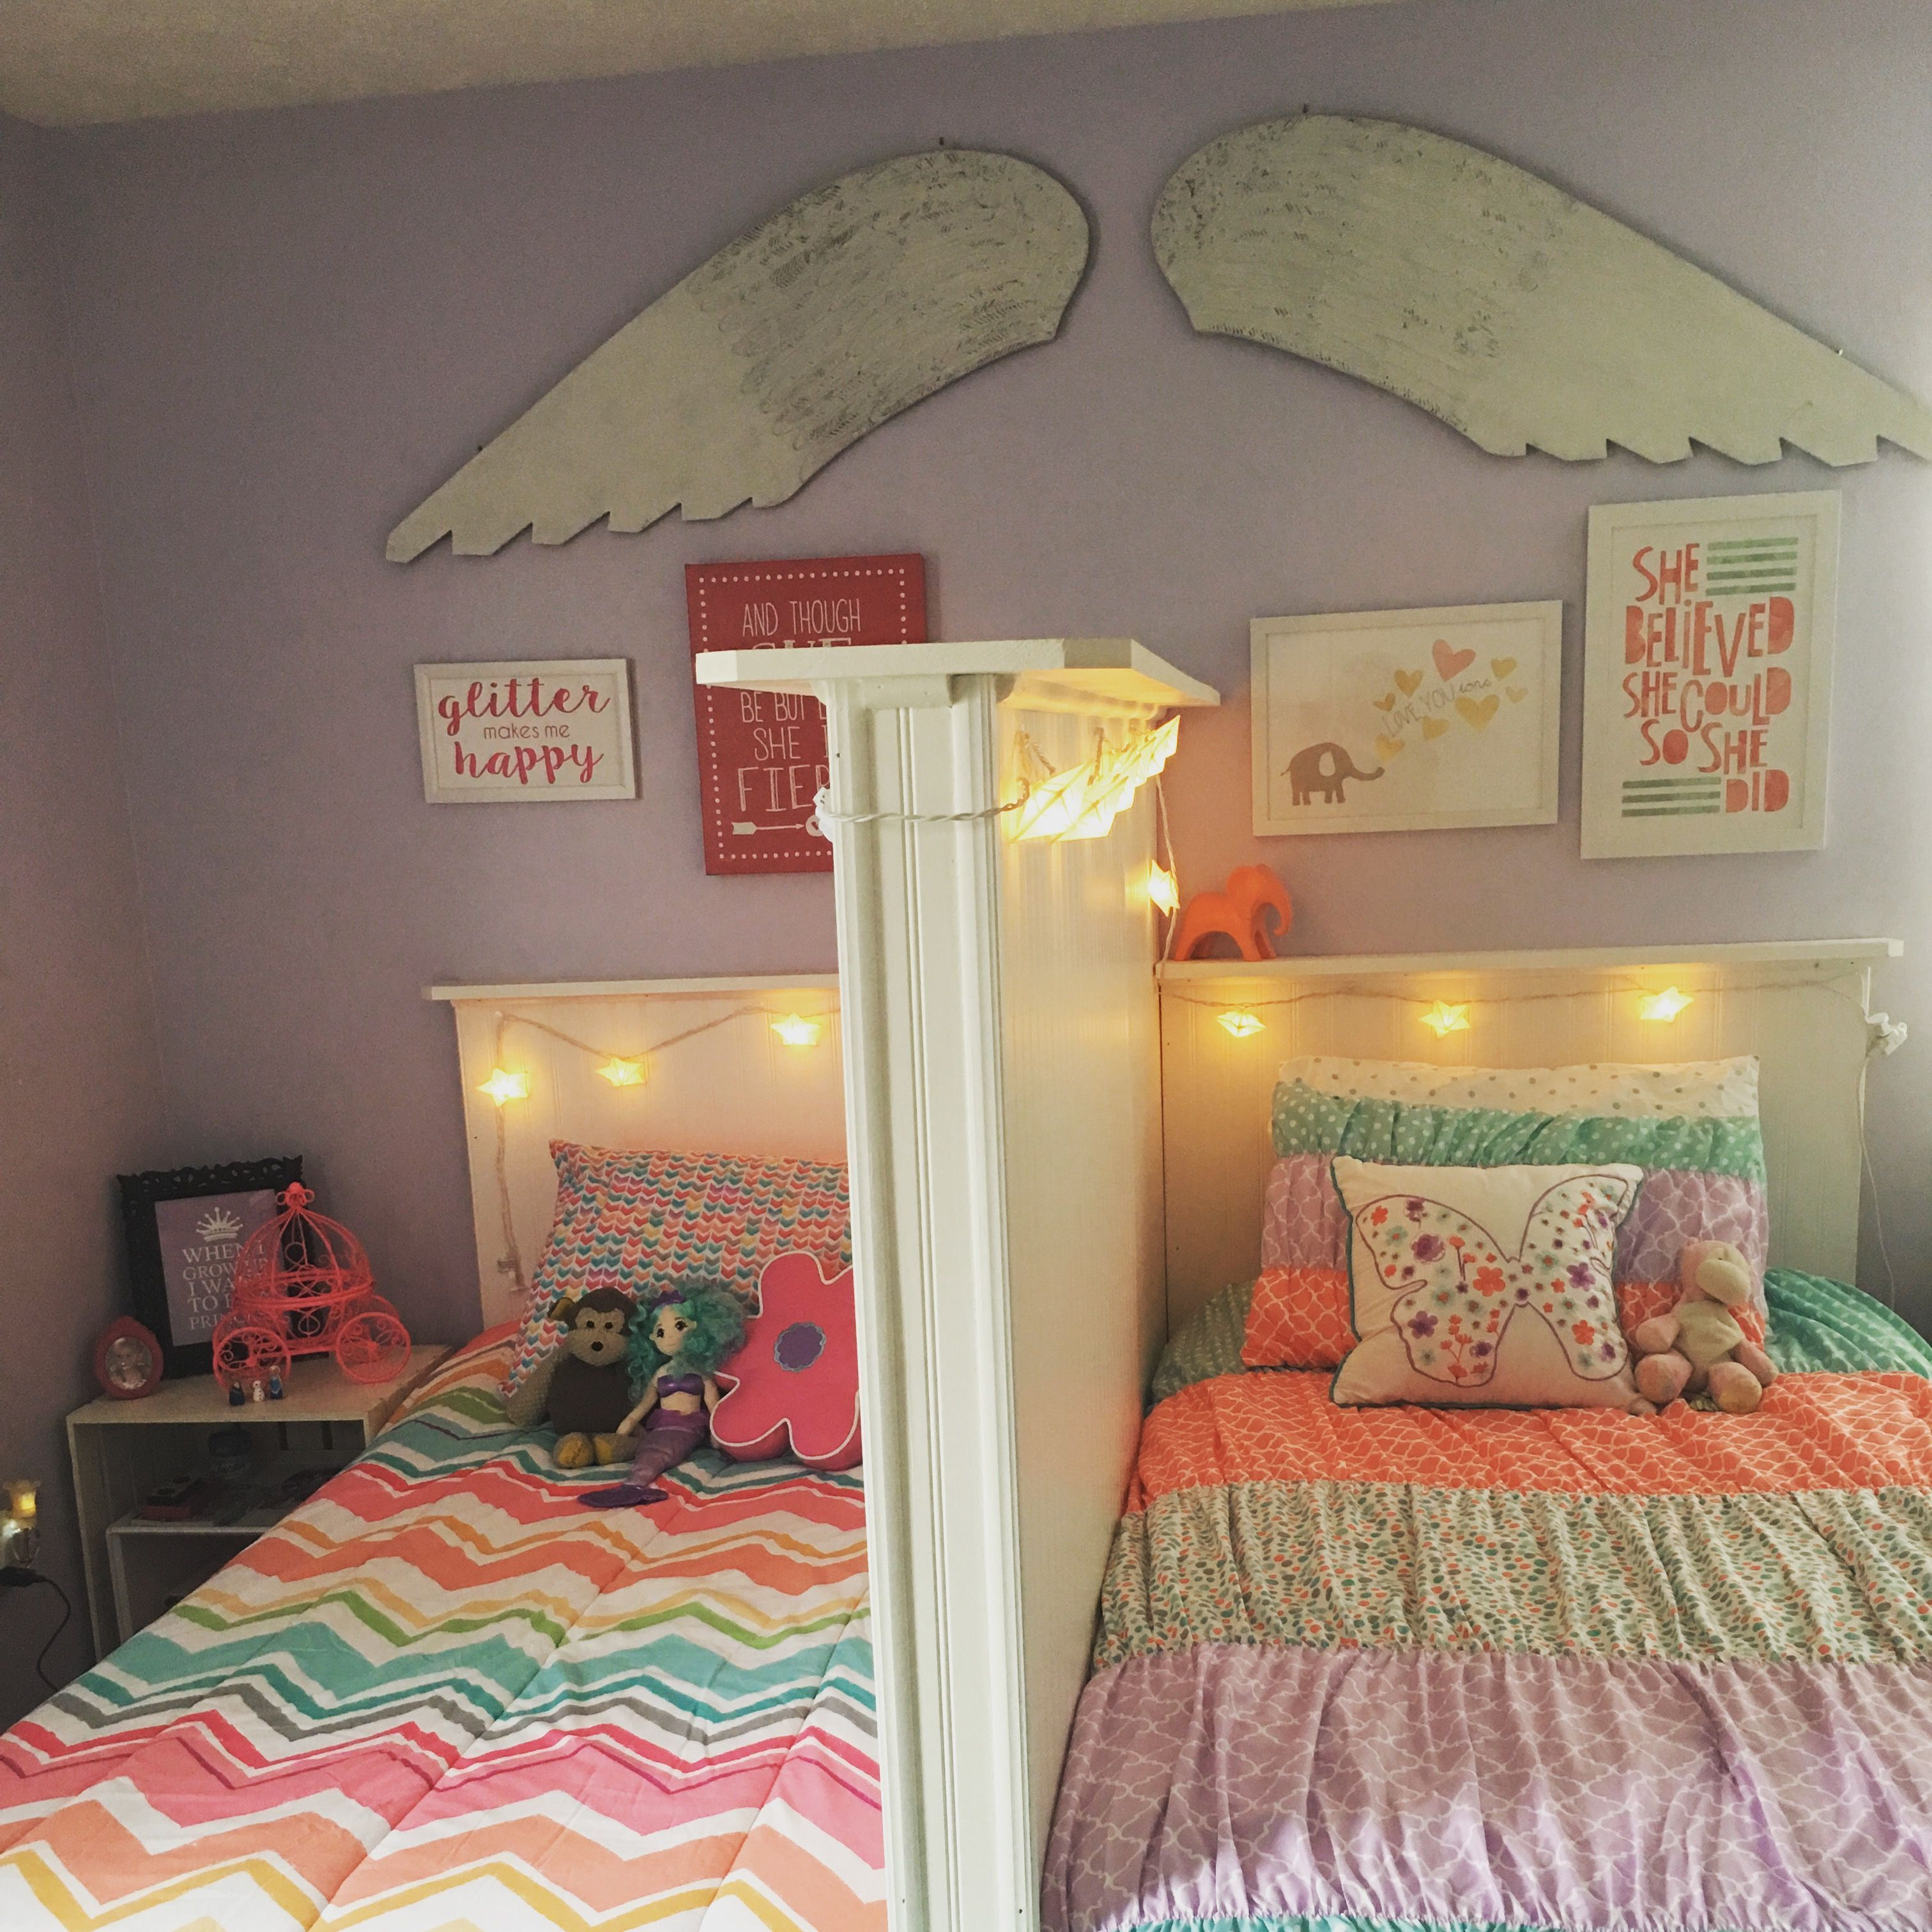 d little girls bedroom Love it because each of them has their